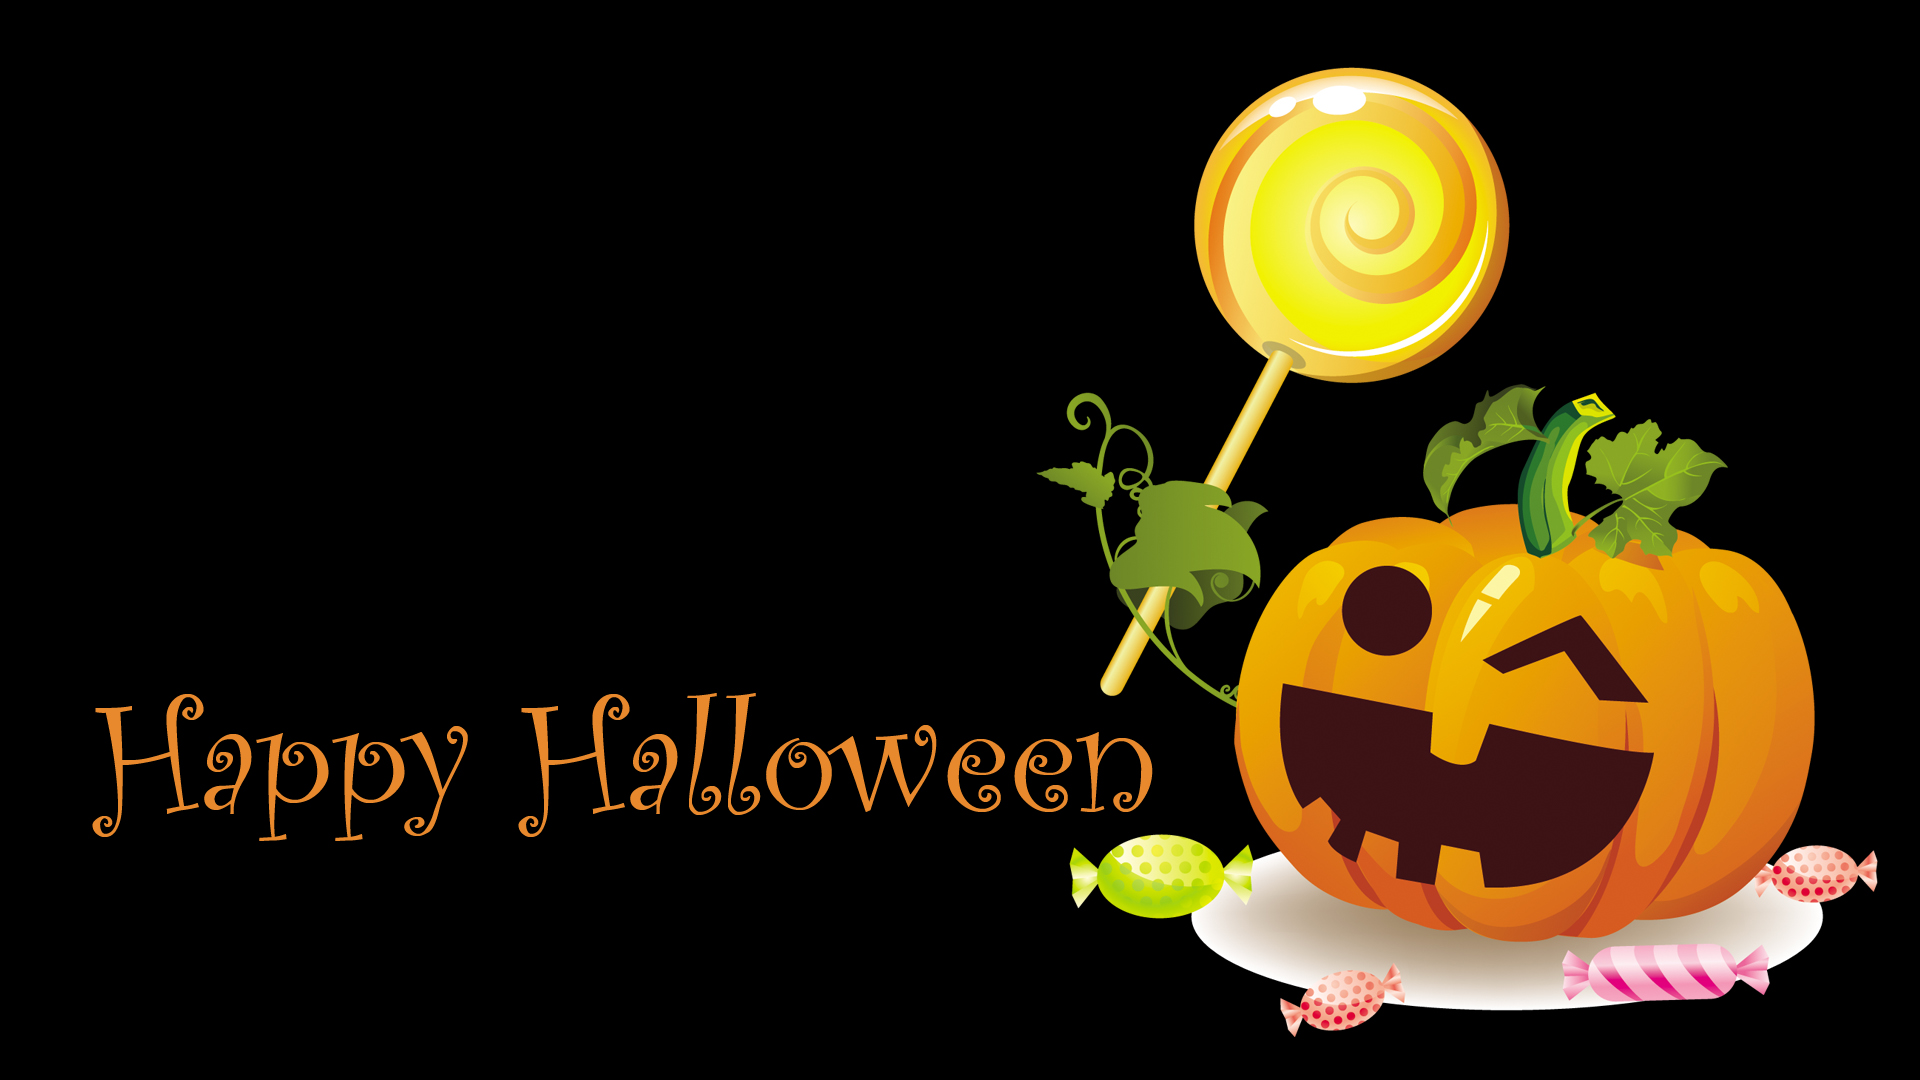 Happy Halloween Images 2017